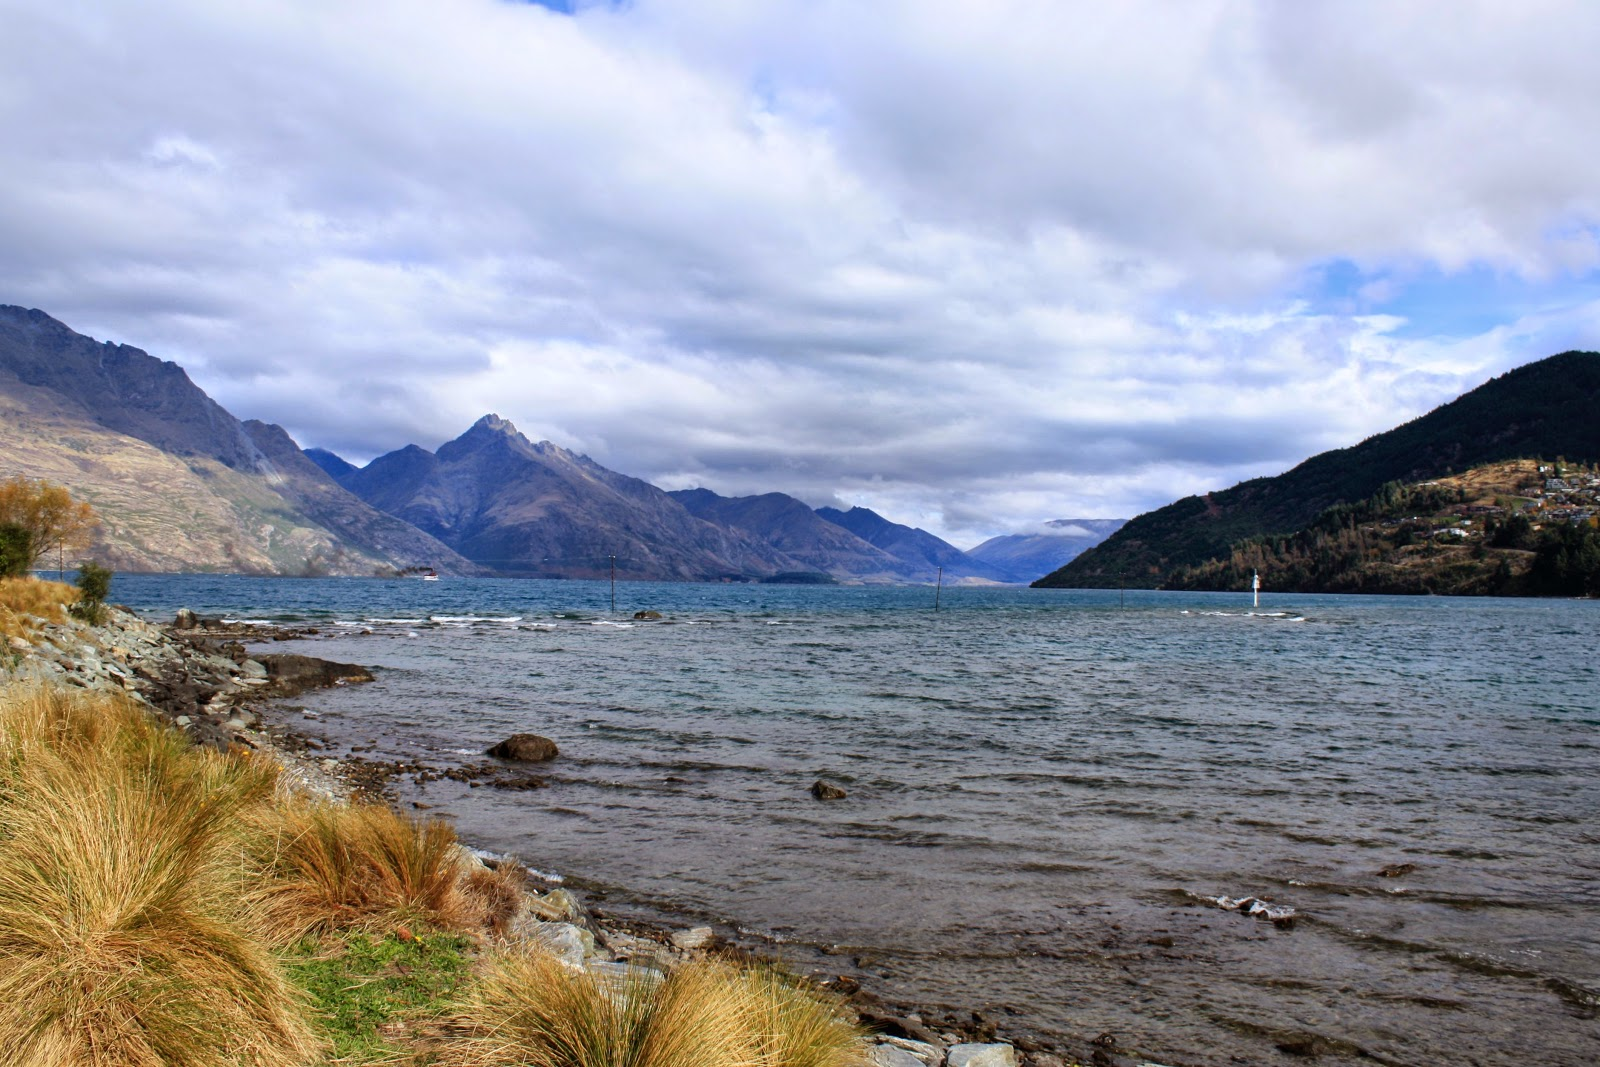 Tussock grass at Lake Wakatipu, Queenstown.